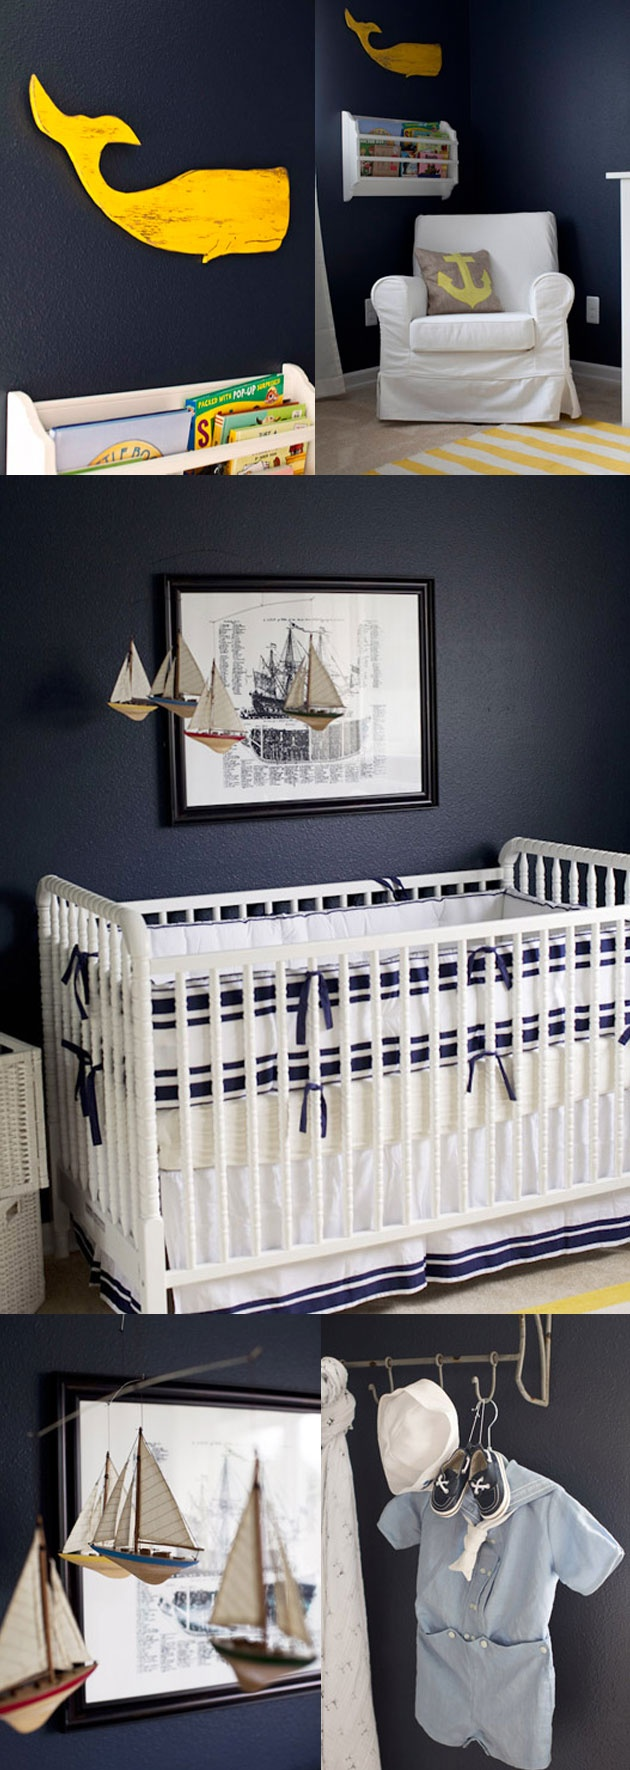 Perfect Blue & White Nautical Nursery with Yellow Accent